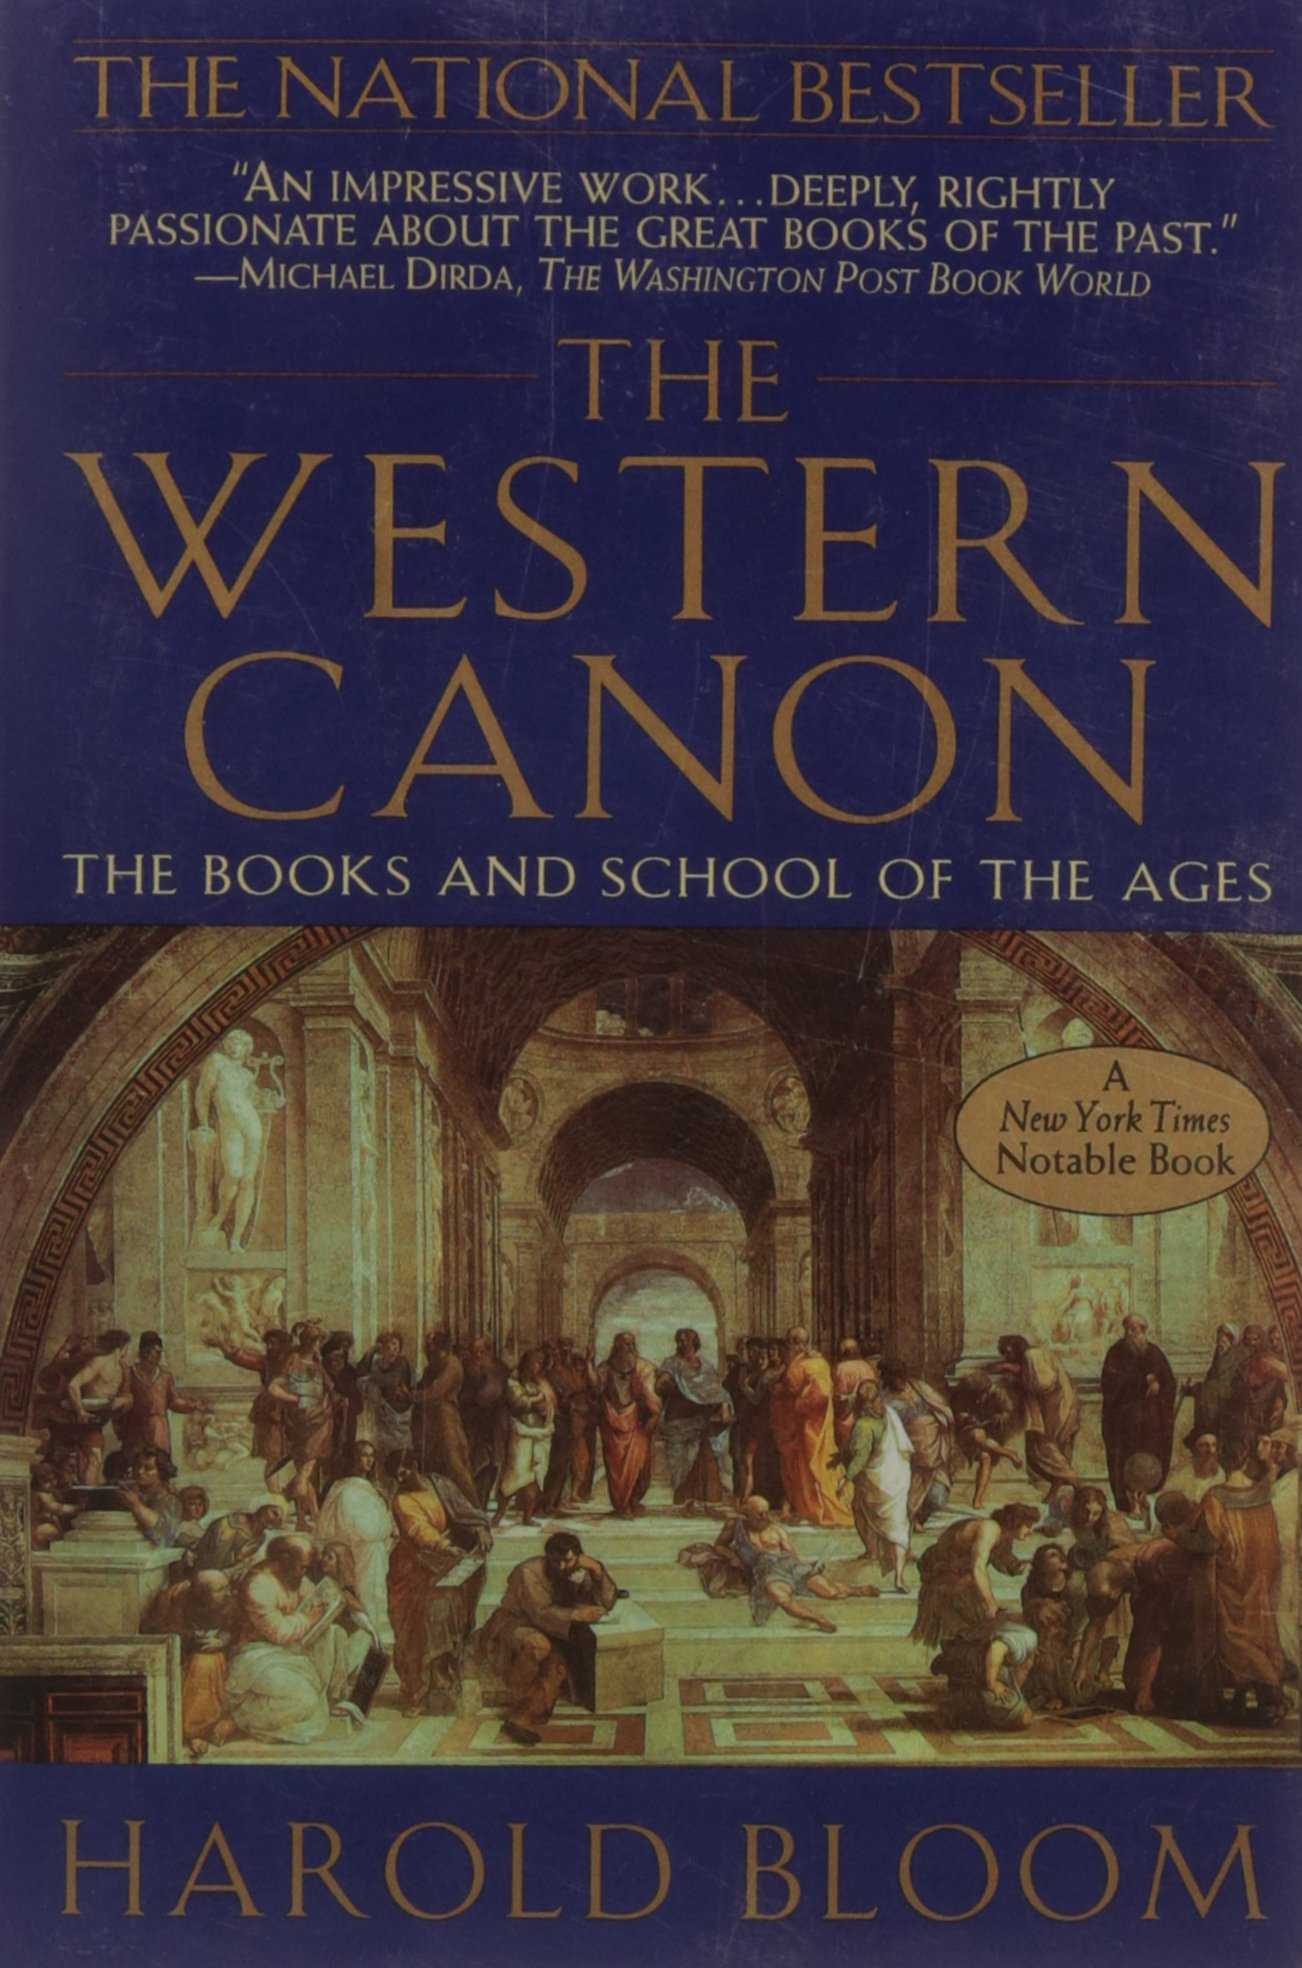 The Western Canon The Books and School of the Ages by Harold Bloom.jpg